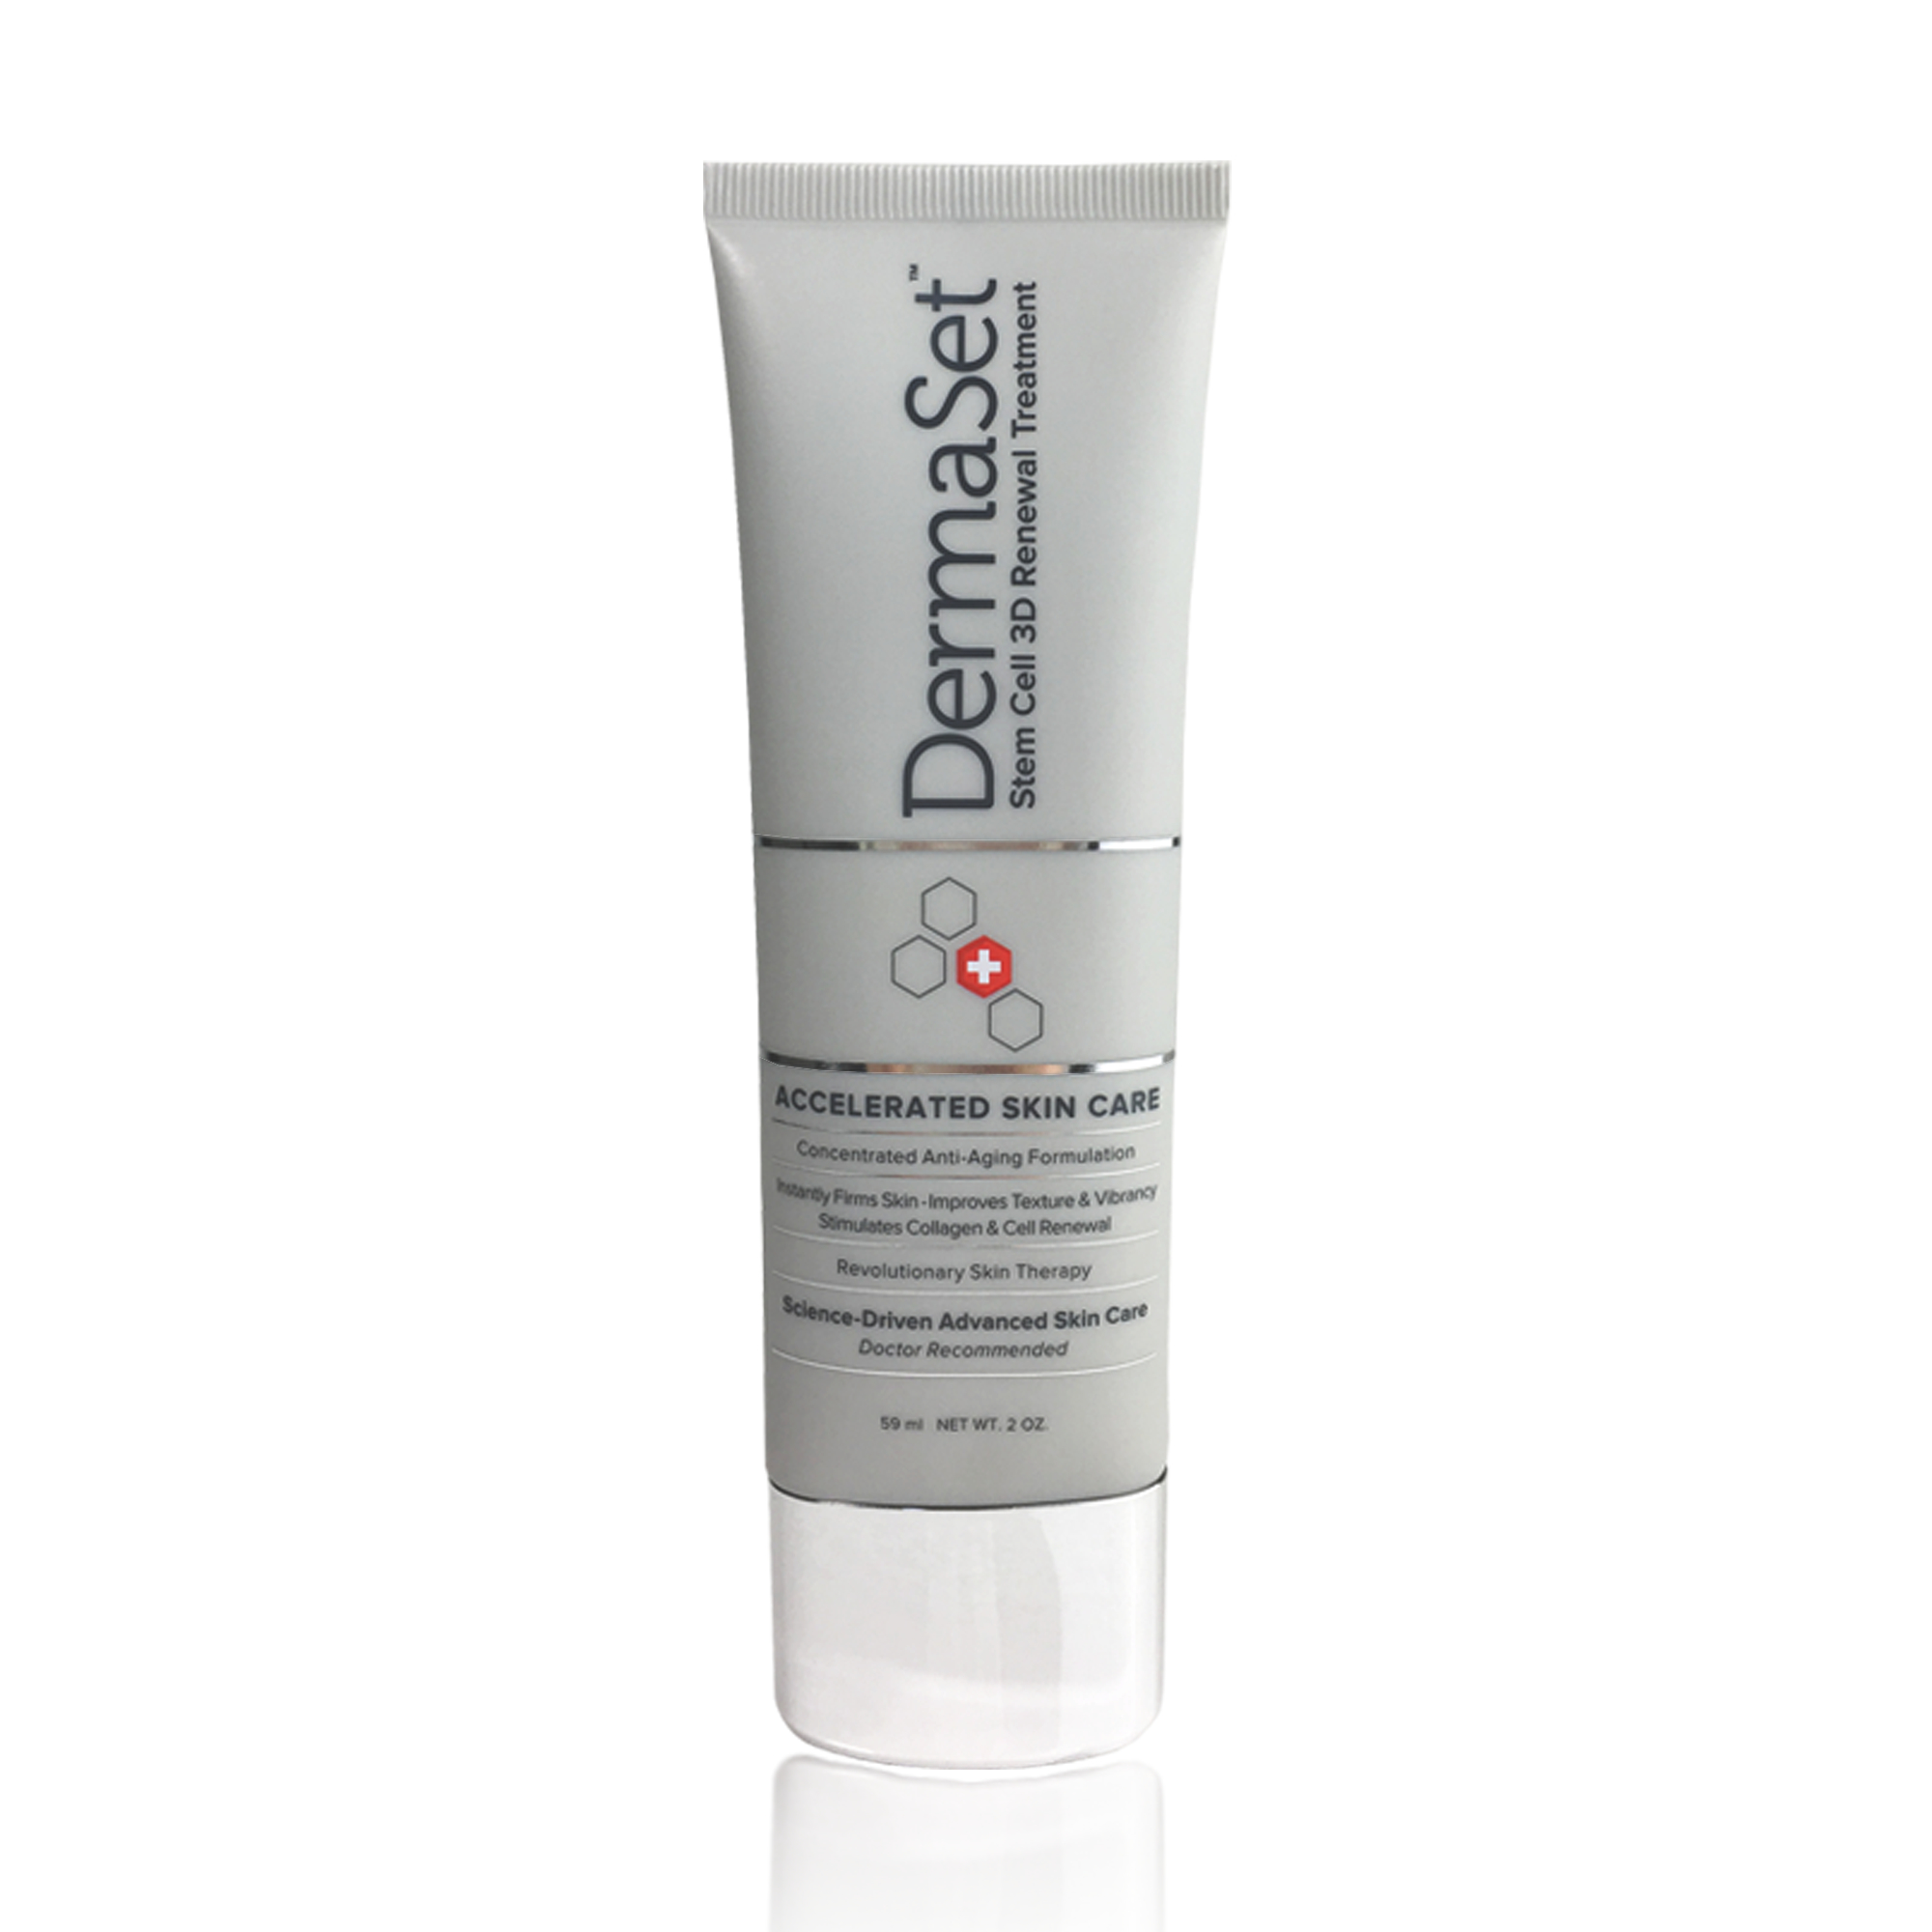 Dermaset 3D Renewal Stem Cell Anti Aging All in One Cream